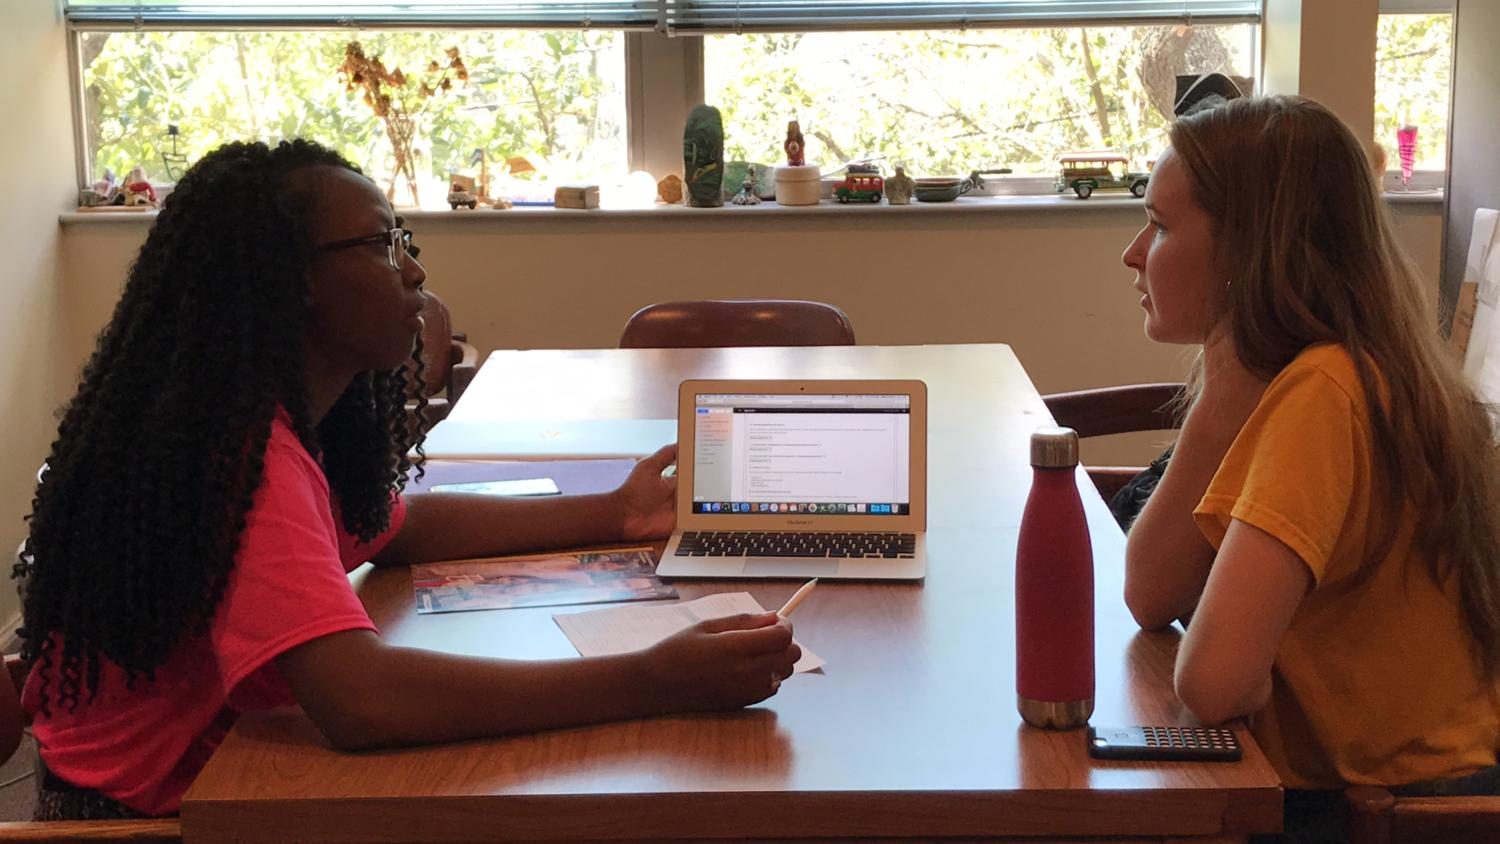 Rodriana Edwards, right, shows Nicole Bouchie, environmental science sophomore, different study abroad programs for Japan. Loyola's Center for International Education provides peer advisors to aid students who are interested in traveling while in college. Photo credit: Chasity Pugh